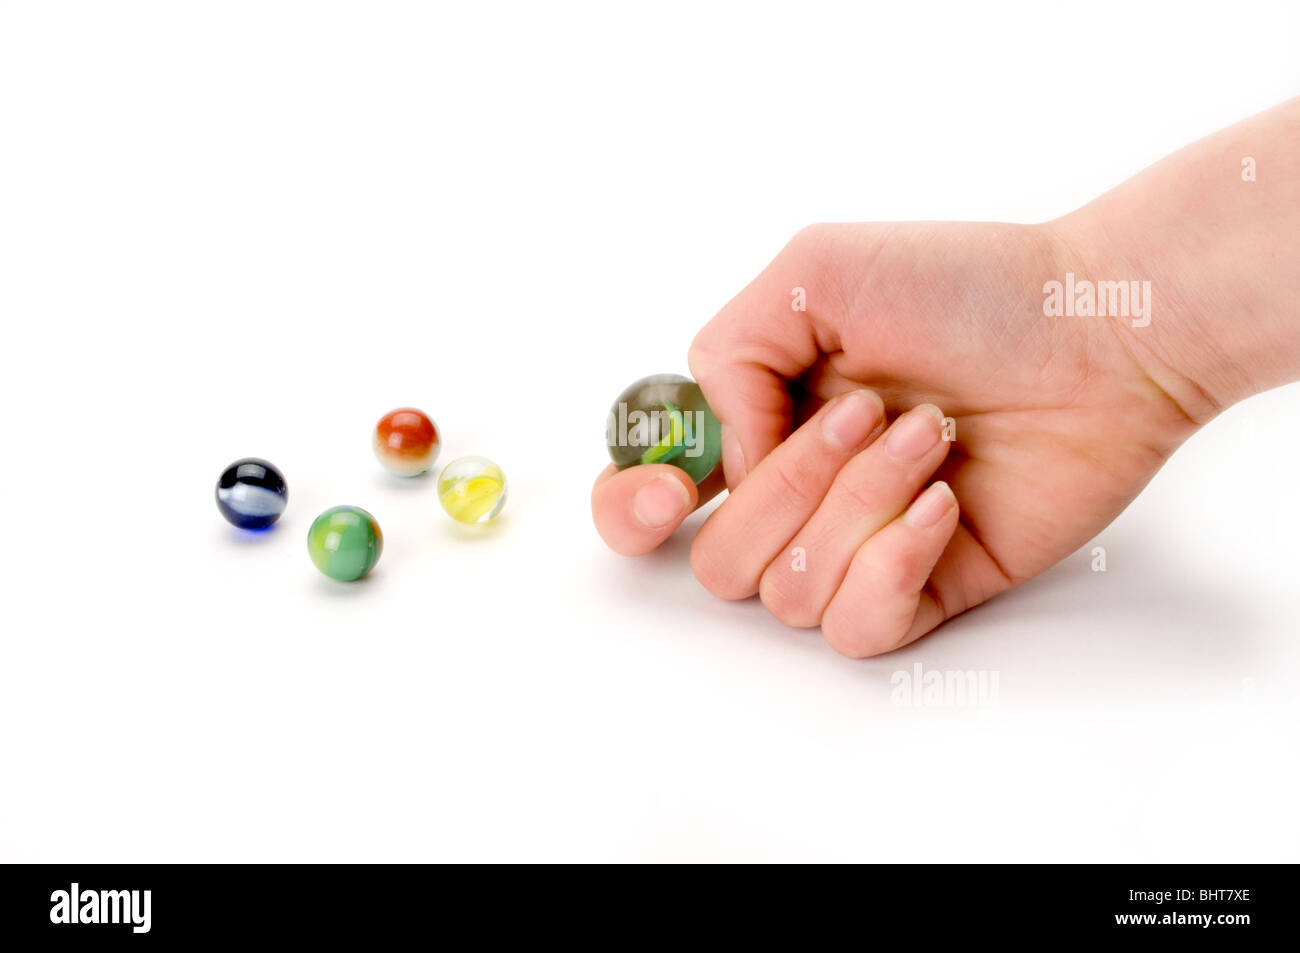 hand on white with marbles - Stock Image